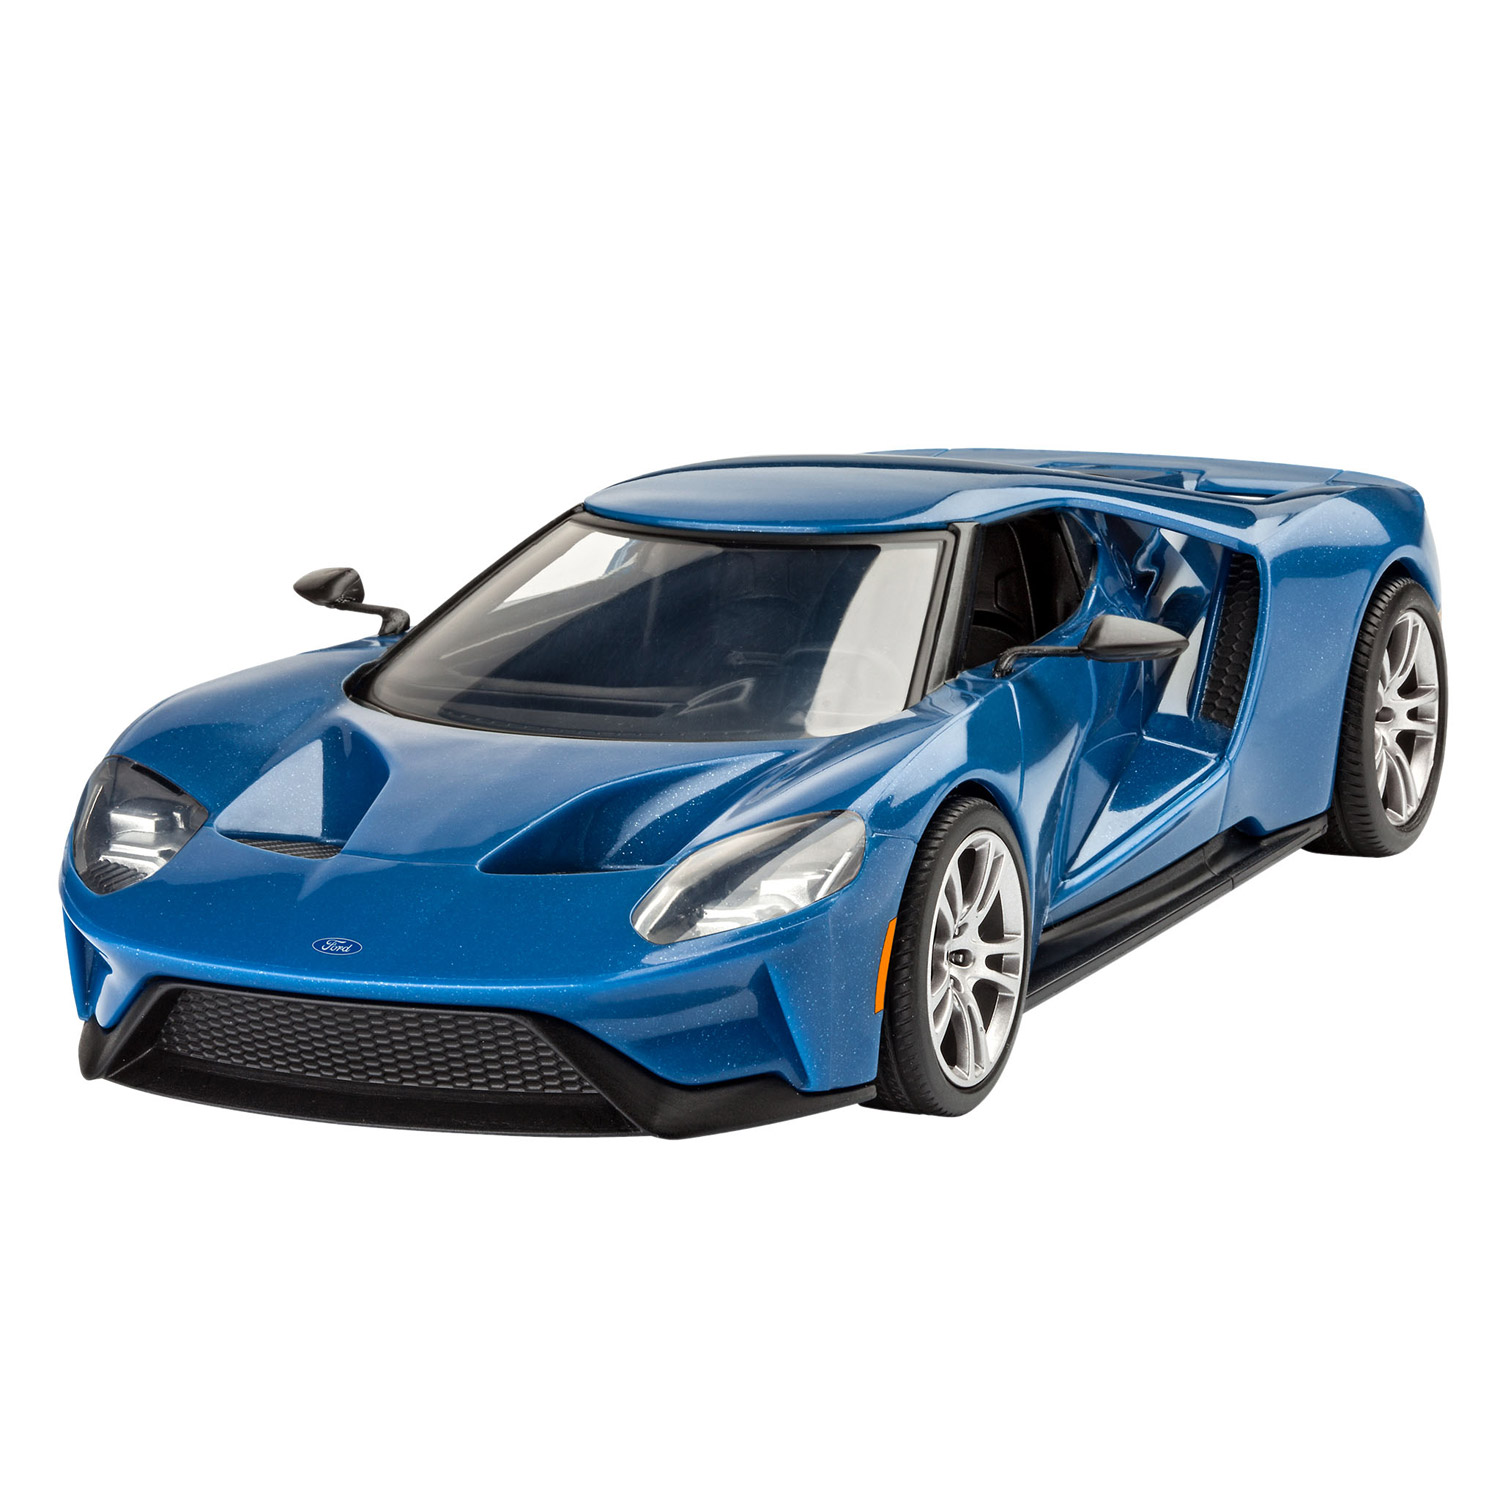 Click Maquette 2017 Gt VoitureModel Set Easy Ford 4R35jLAqc